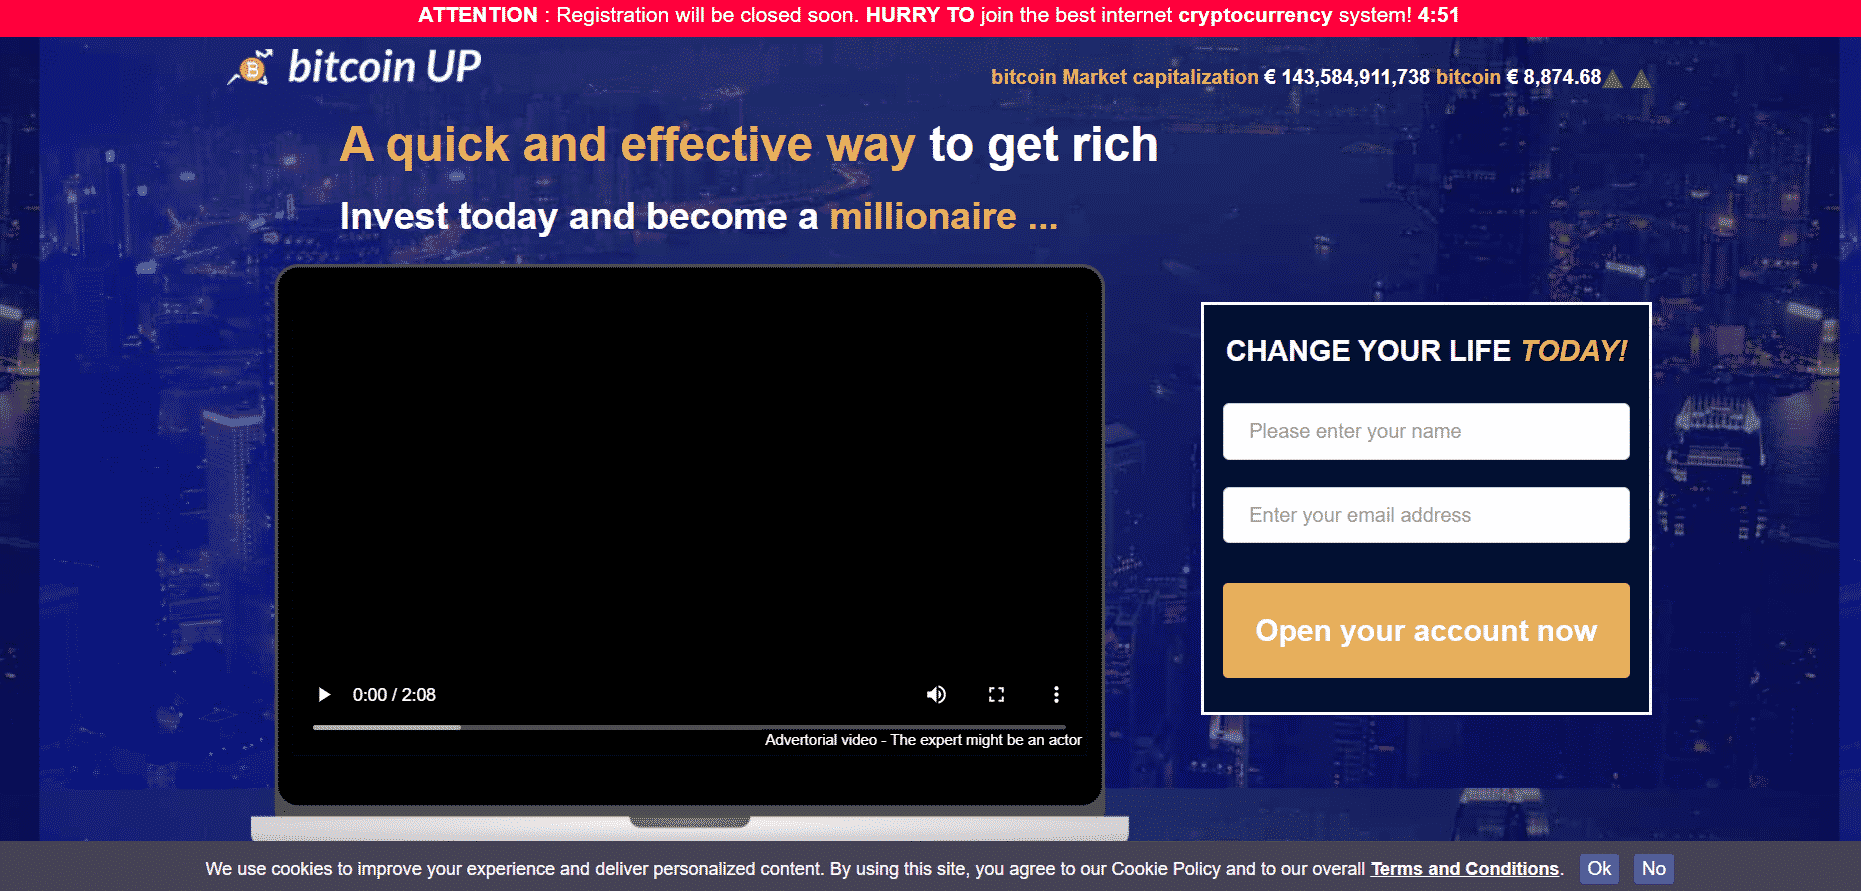 Bitcoin UP Review register